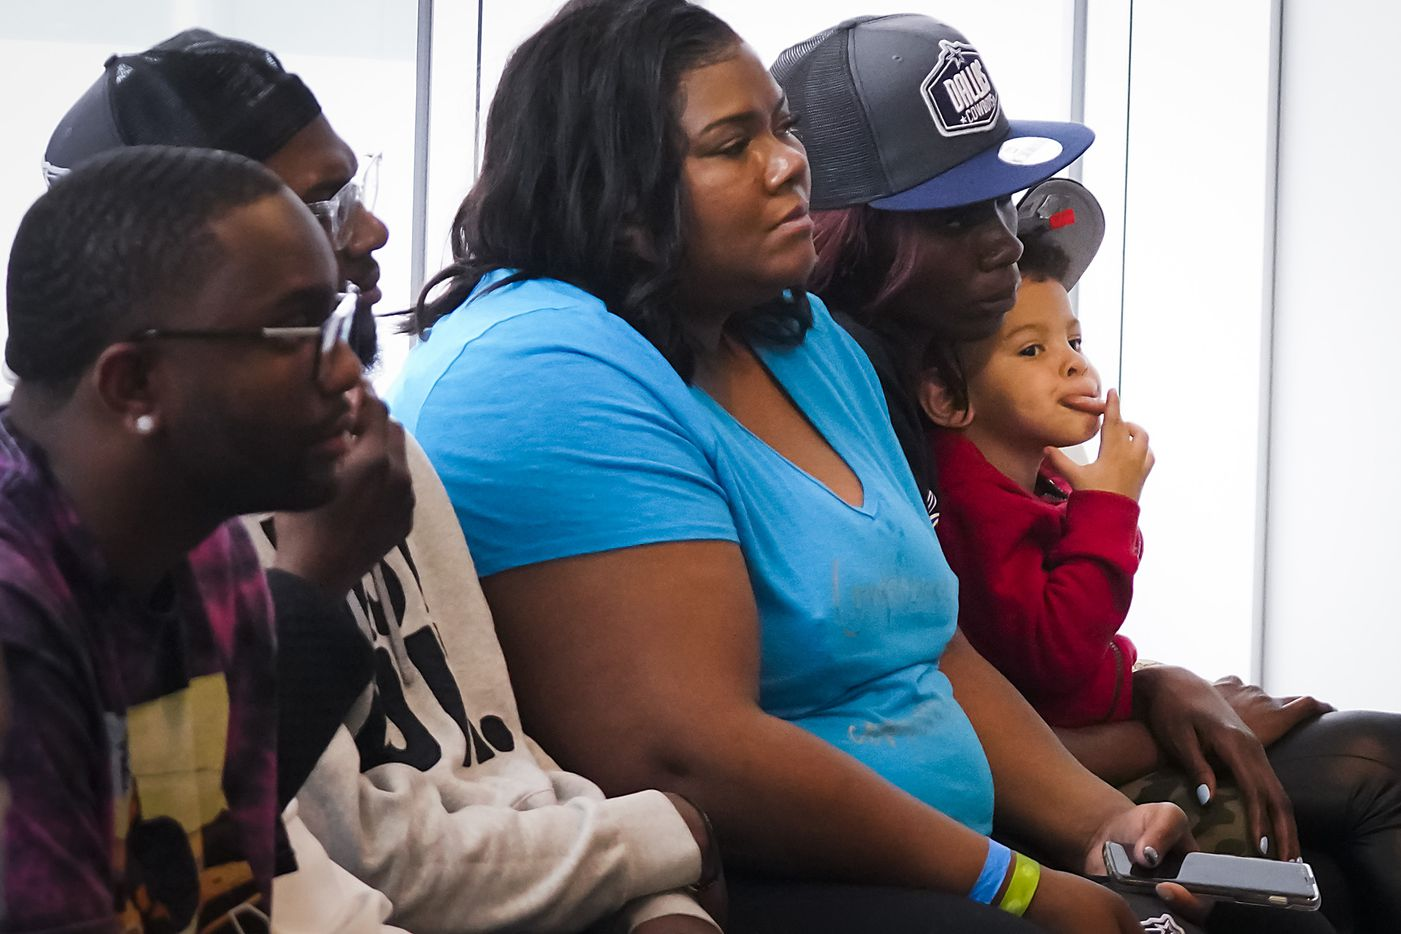 Malcolm Parsons, 3, the son of Dallas Cowboys first-round draft pick Micah Parsons, plays while sitting in the lap of his aunt Shatara Parsons who listens along with her mom Sherese Parsons, during a press conference introducing the linebacker from Penn State at The Star on Friday, April 30, 2021, in Frisco. (Smiley N. Pool/The Dallas Morning News)